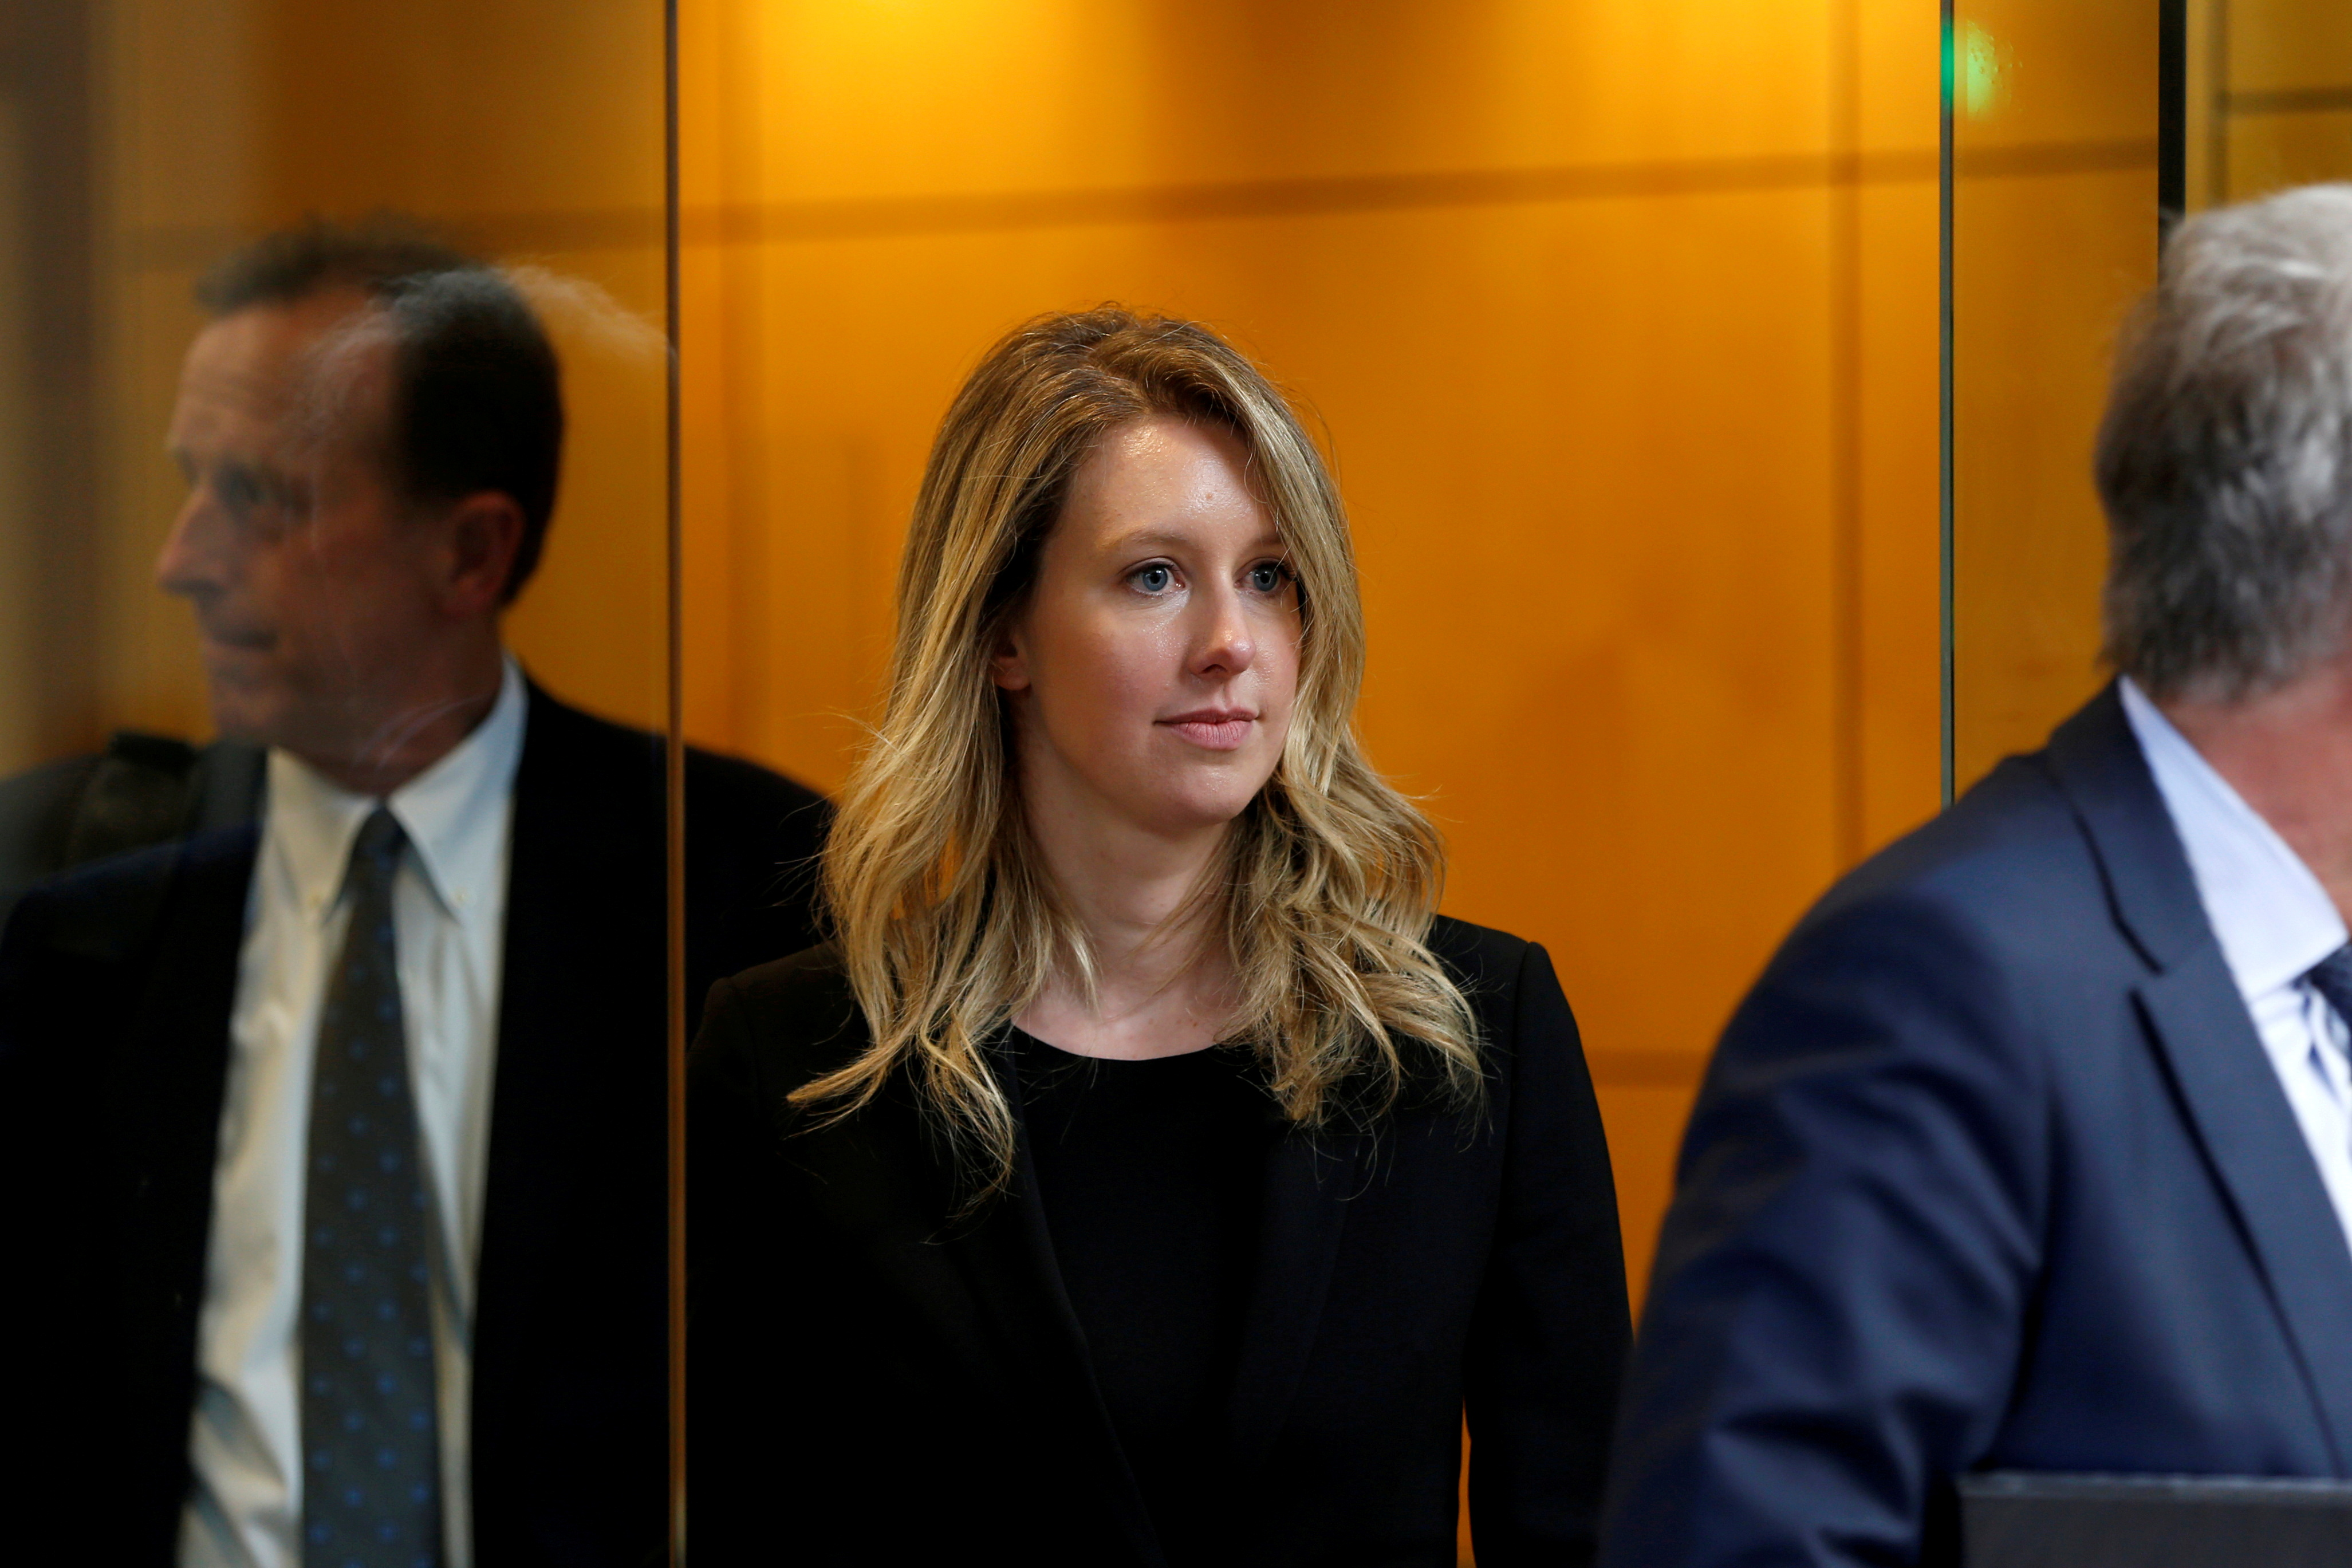 Former Theranos CEO Elizabeth Holmes leaves after a hearing at a federal court in San Jose, California, July 17, U.S., 2019.  REUTERS/Stephen Lam/File Photo